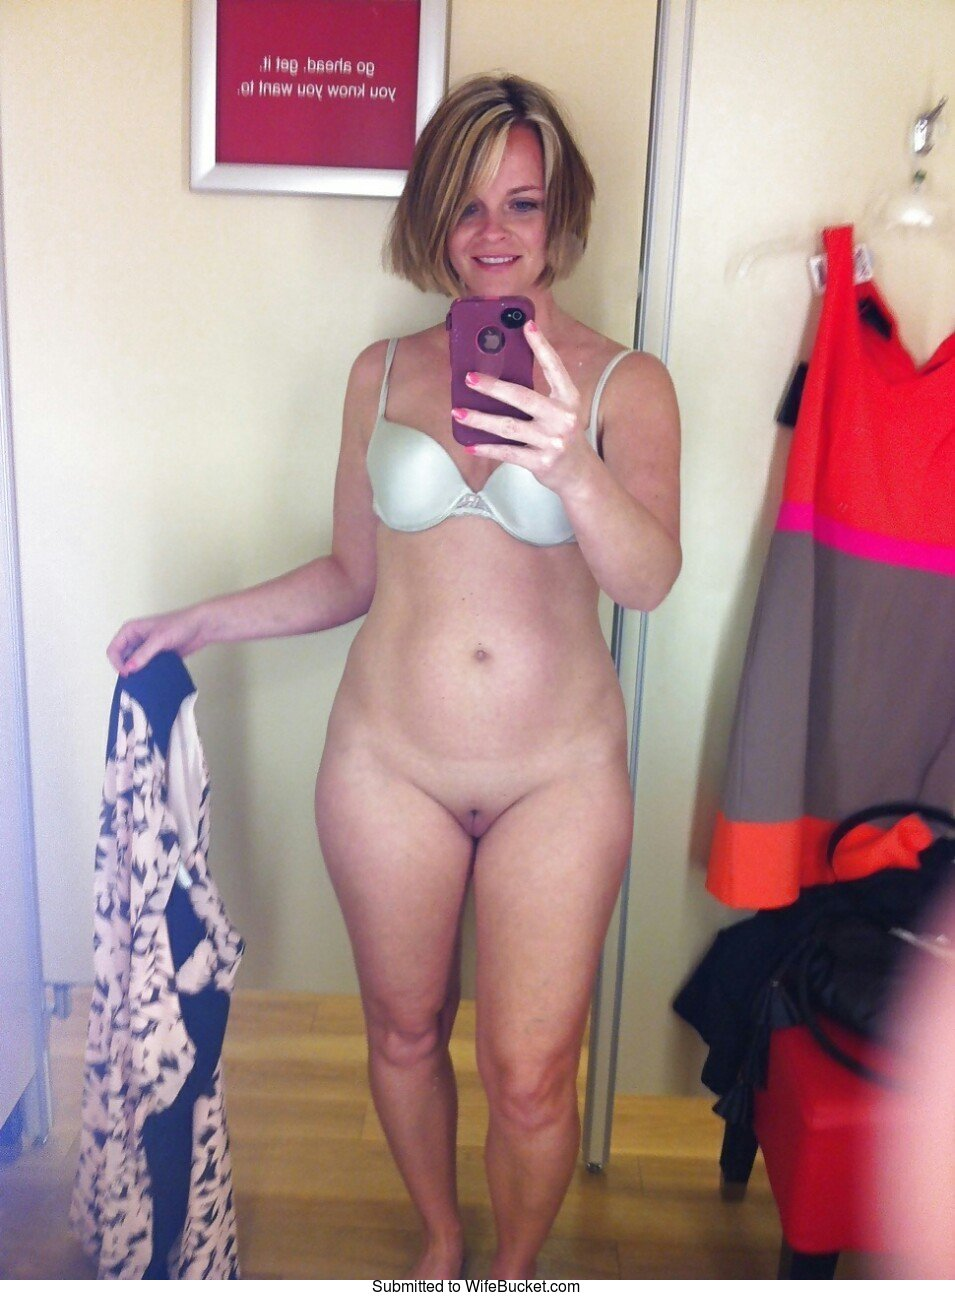 Wifebucket  Naked Selfies And Mirror Nudes From Real -5432